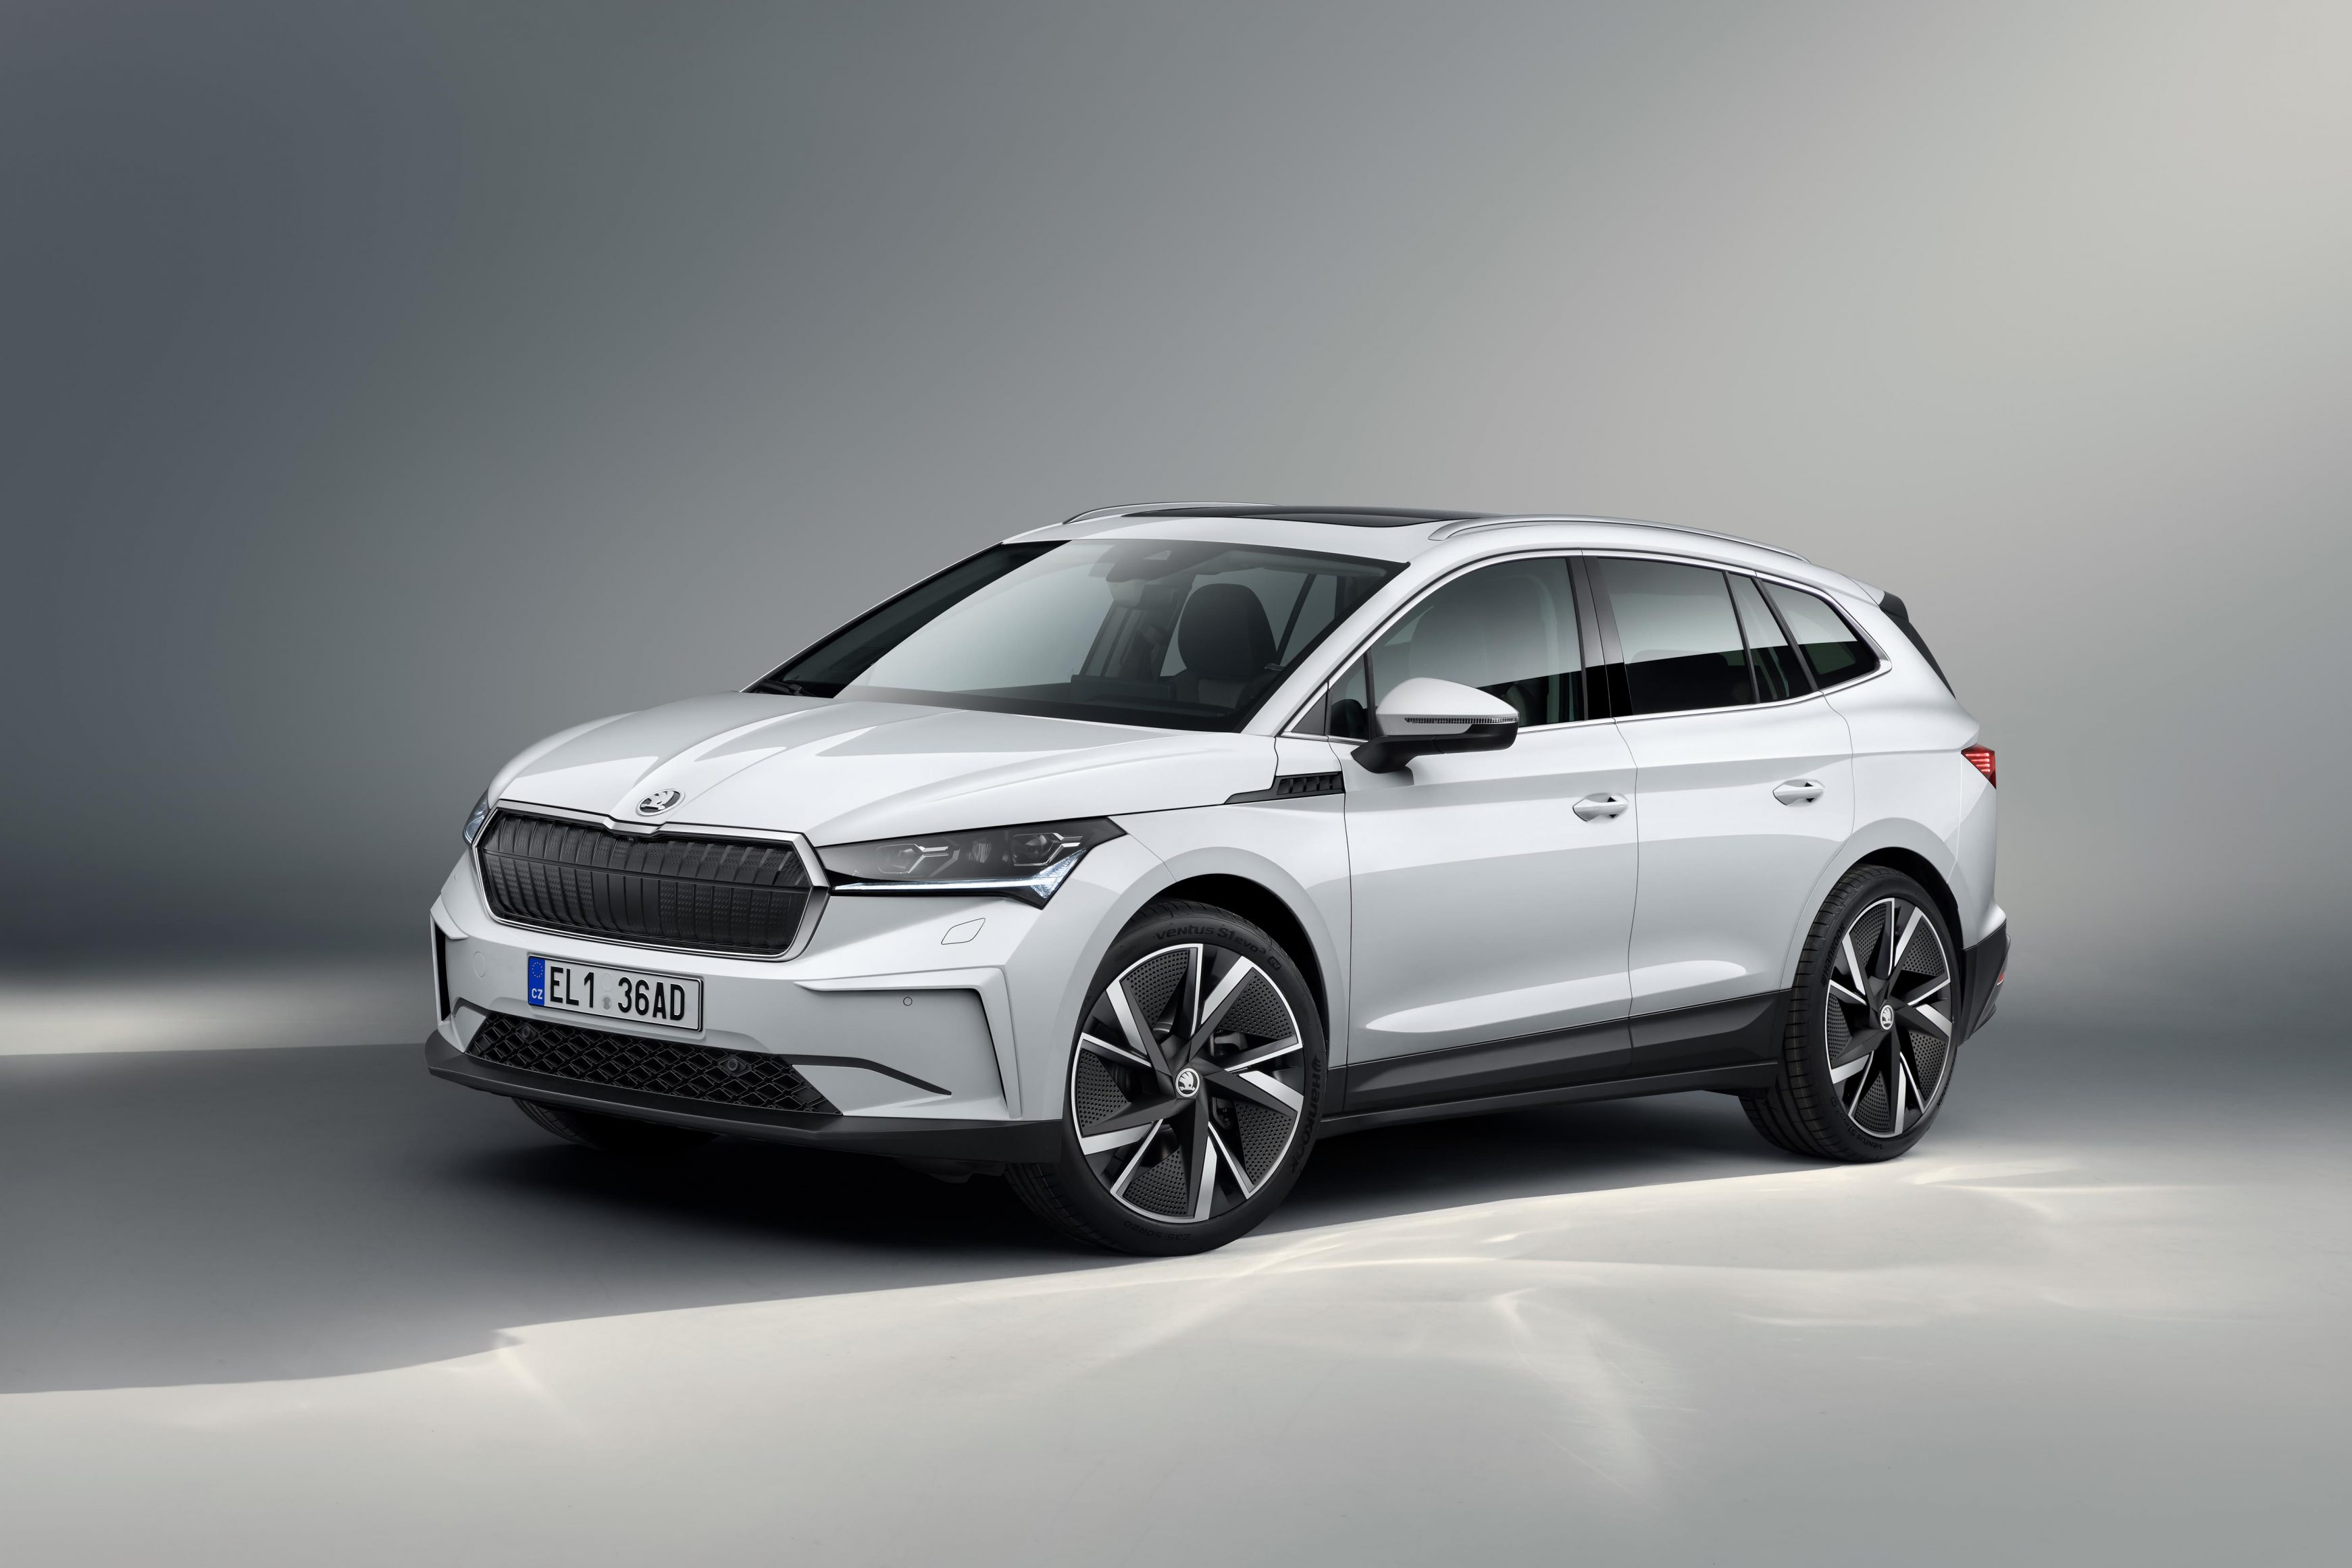 The Skoda Enyaq iV is the brand's first standalone electric car